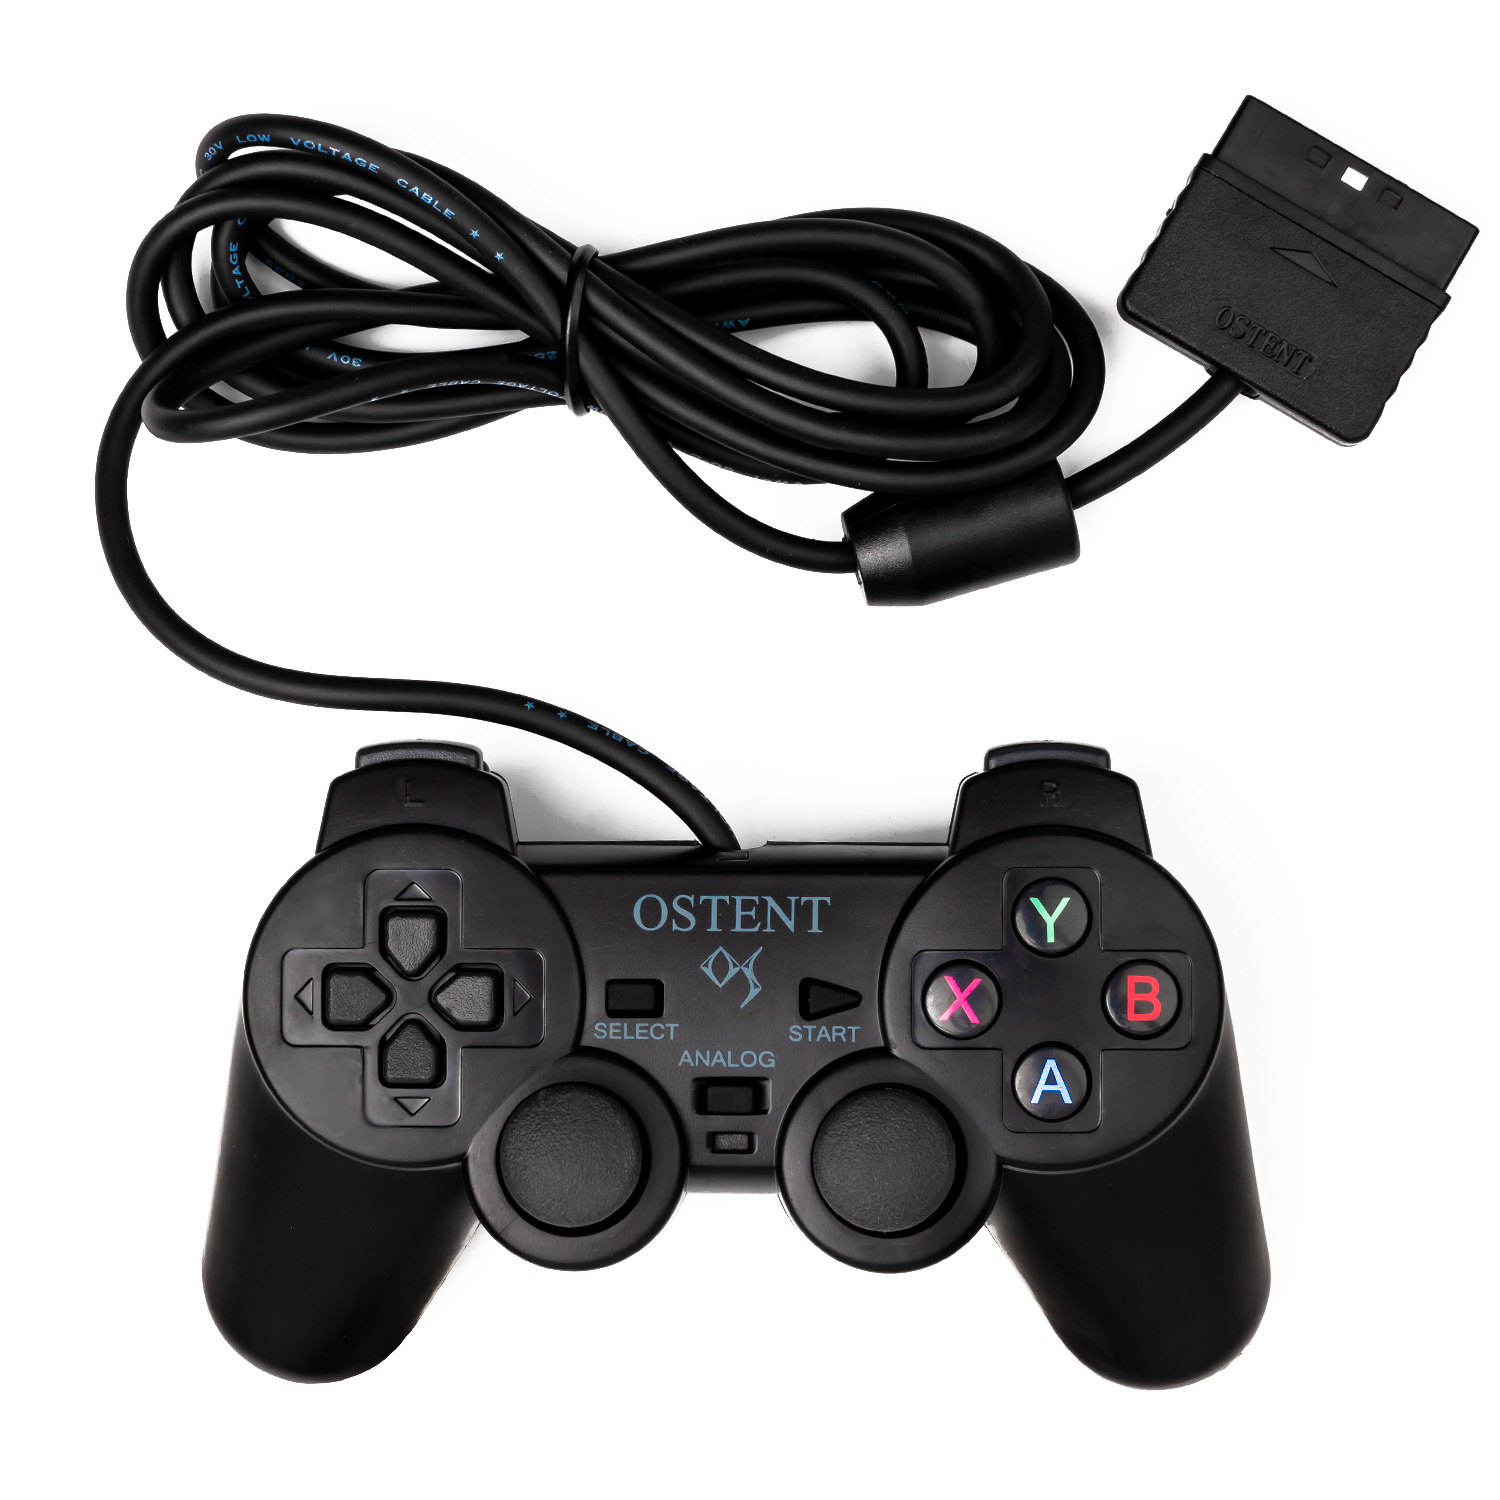 OSTENT Wired Analog Controller Gamepad Joystick Joypad for Sony Playstation PS2 PS1 PS One PSX Console Dual Shock Vibration image